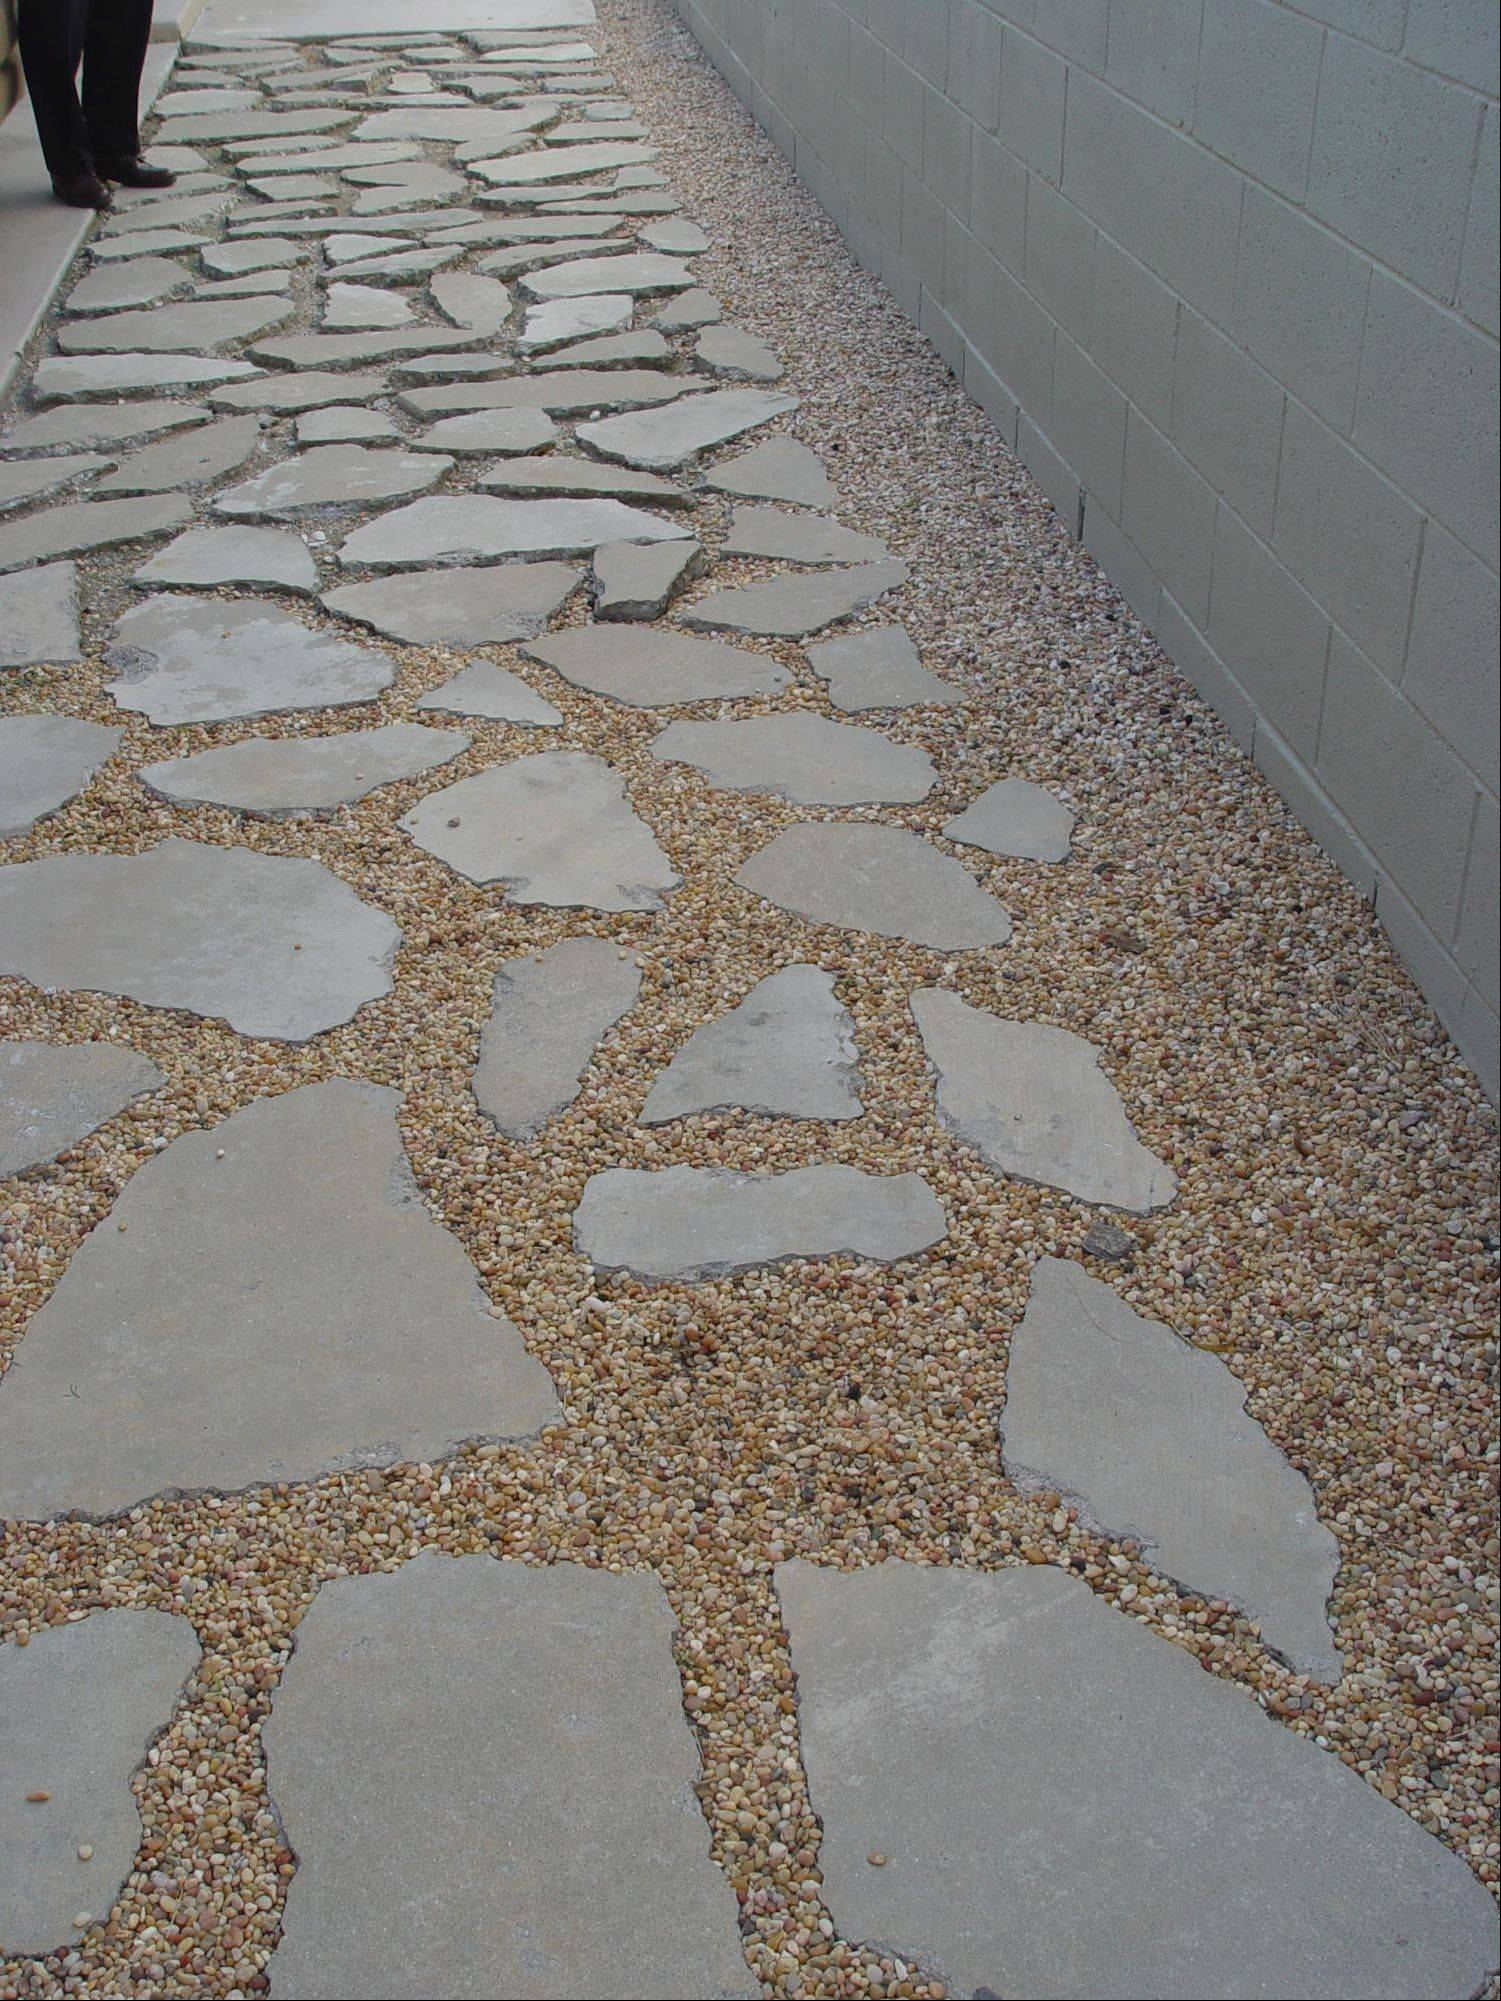 Very fine rounded pebbles are easy on bare feet whether or not you add concrete fragment flagstones.